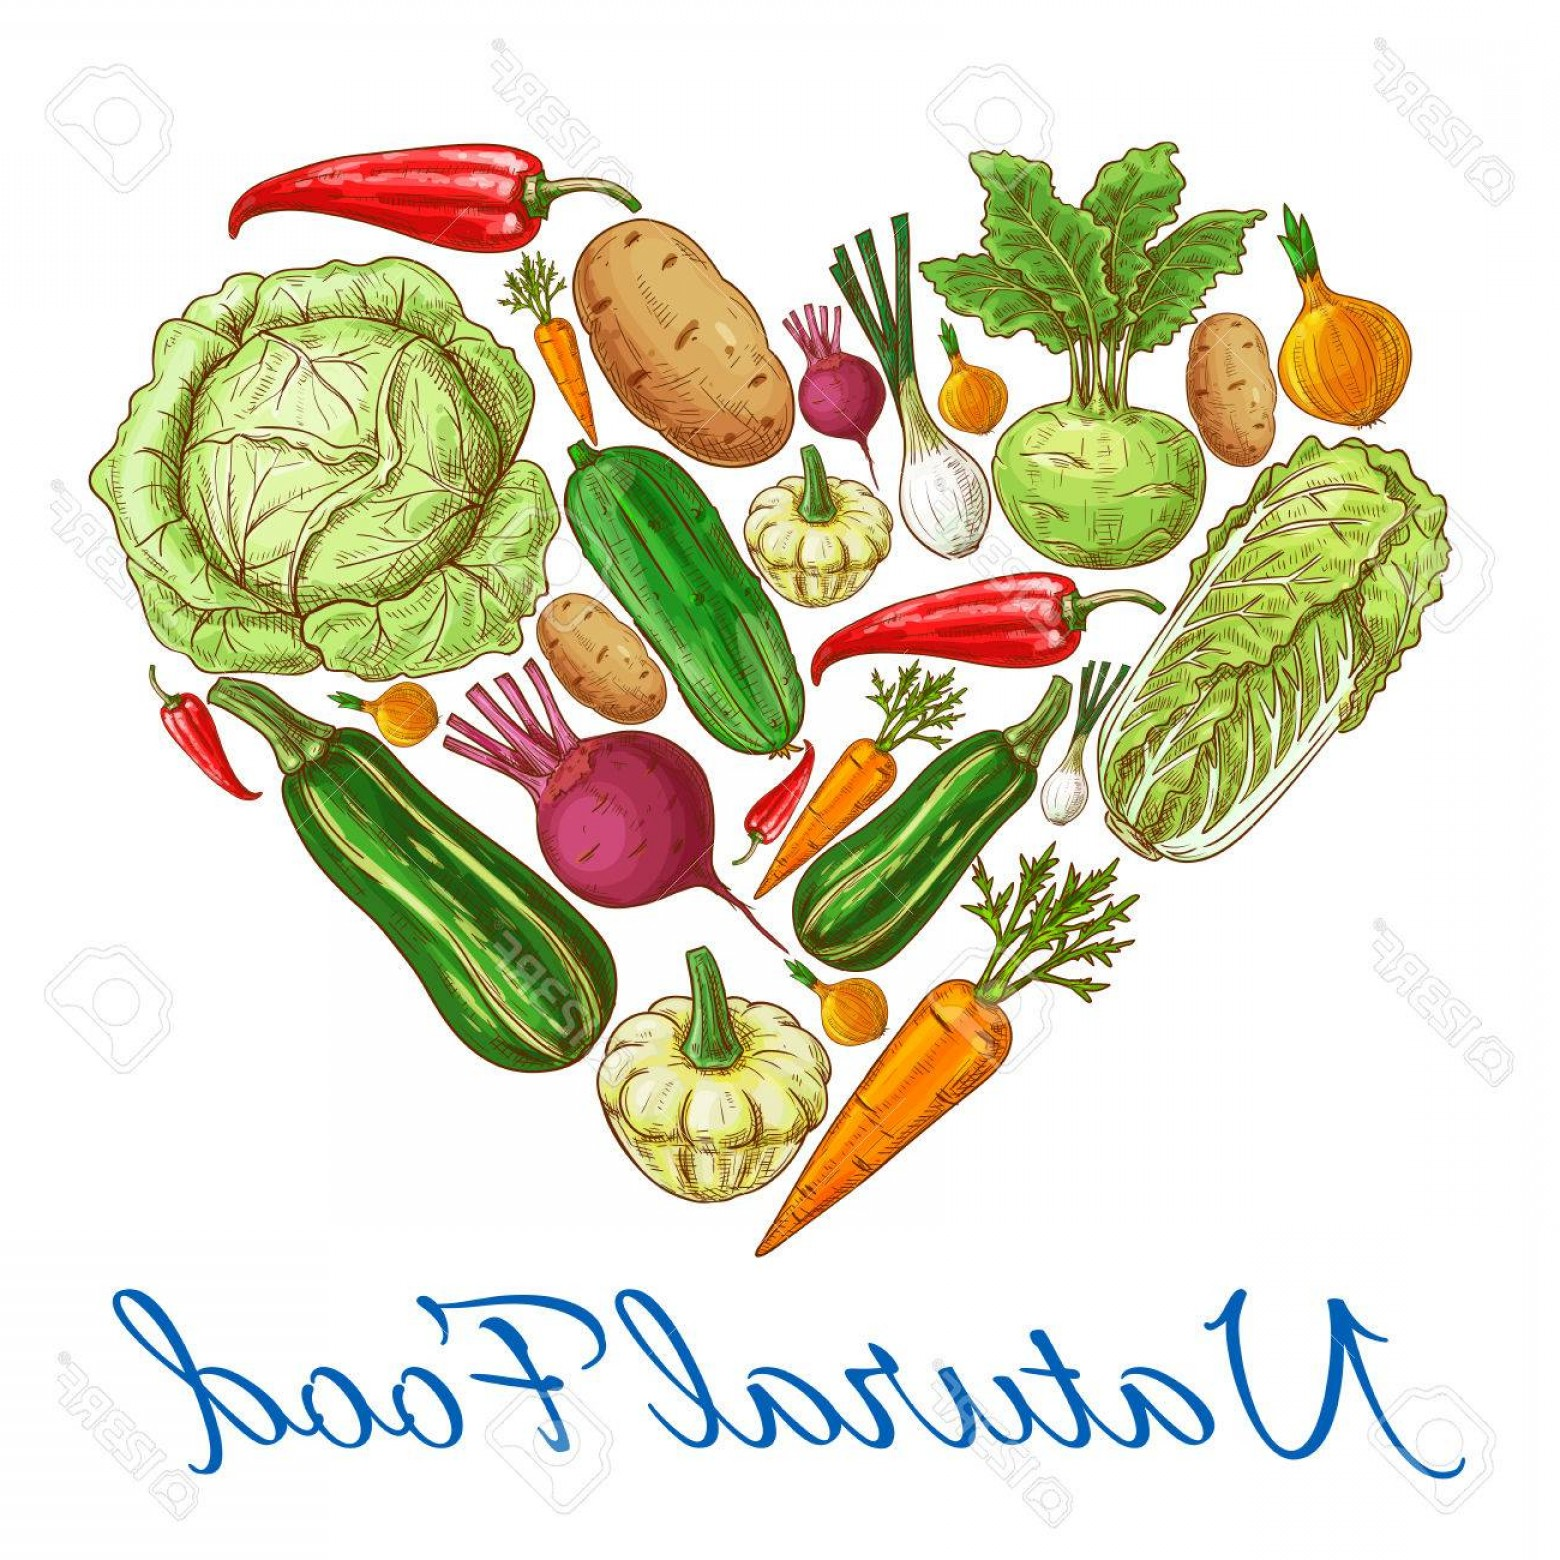 Vegan Heart Vectors: Photostock Vector Heart Of Vegetables Vector Natural Vegetarian Food Vegan Fresh Natural Organic Farm Vegetables Cabba